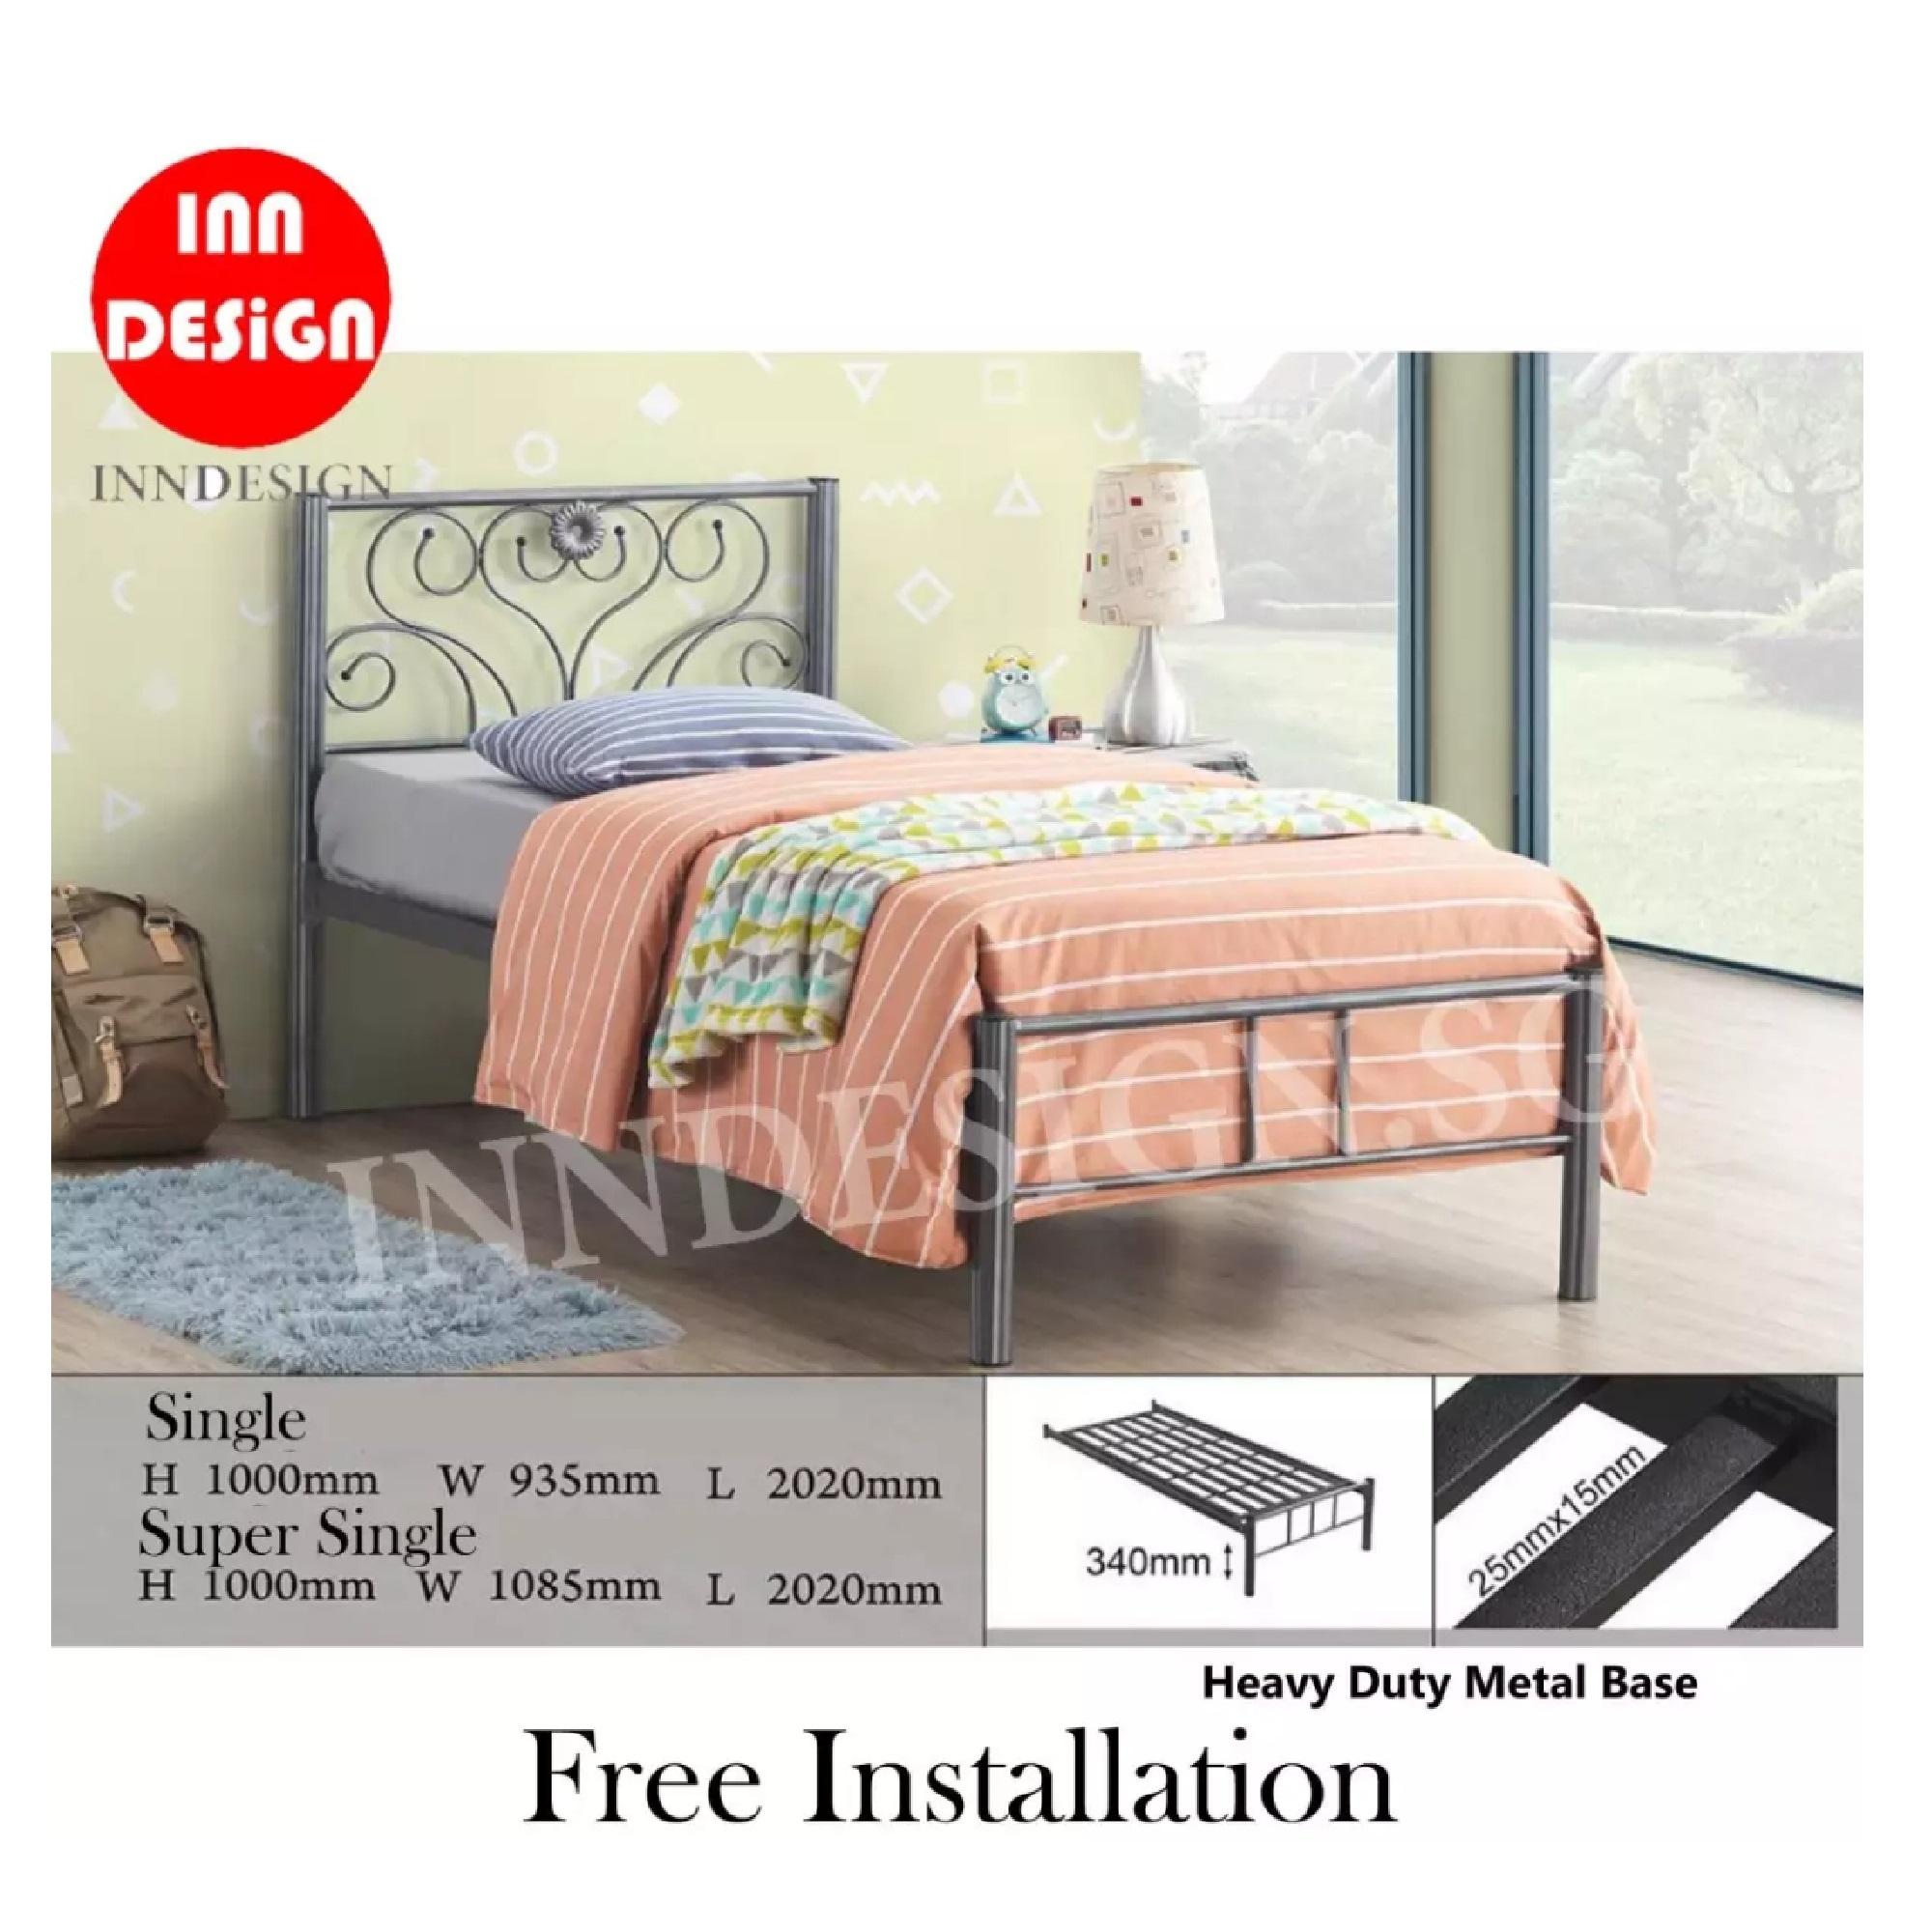 Emie Super Single Heavy Duty Metal Bedframe / Bed (Free Delivery and Installation)